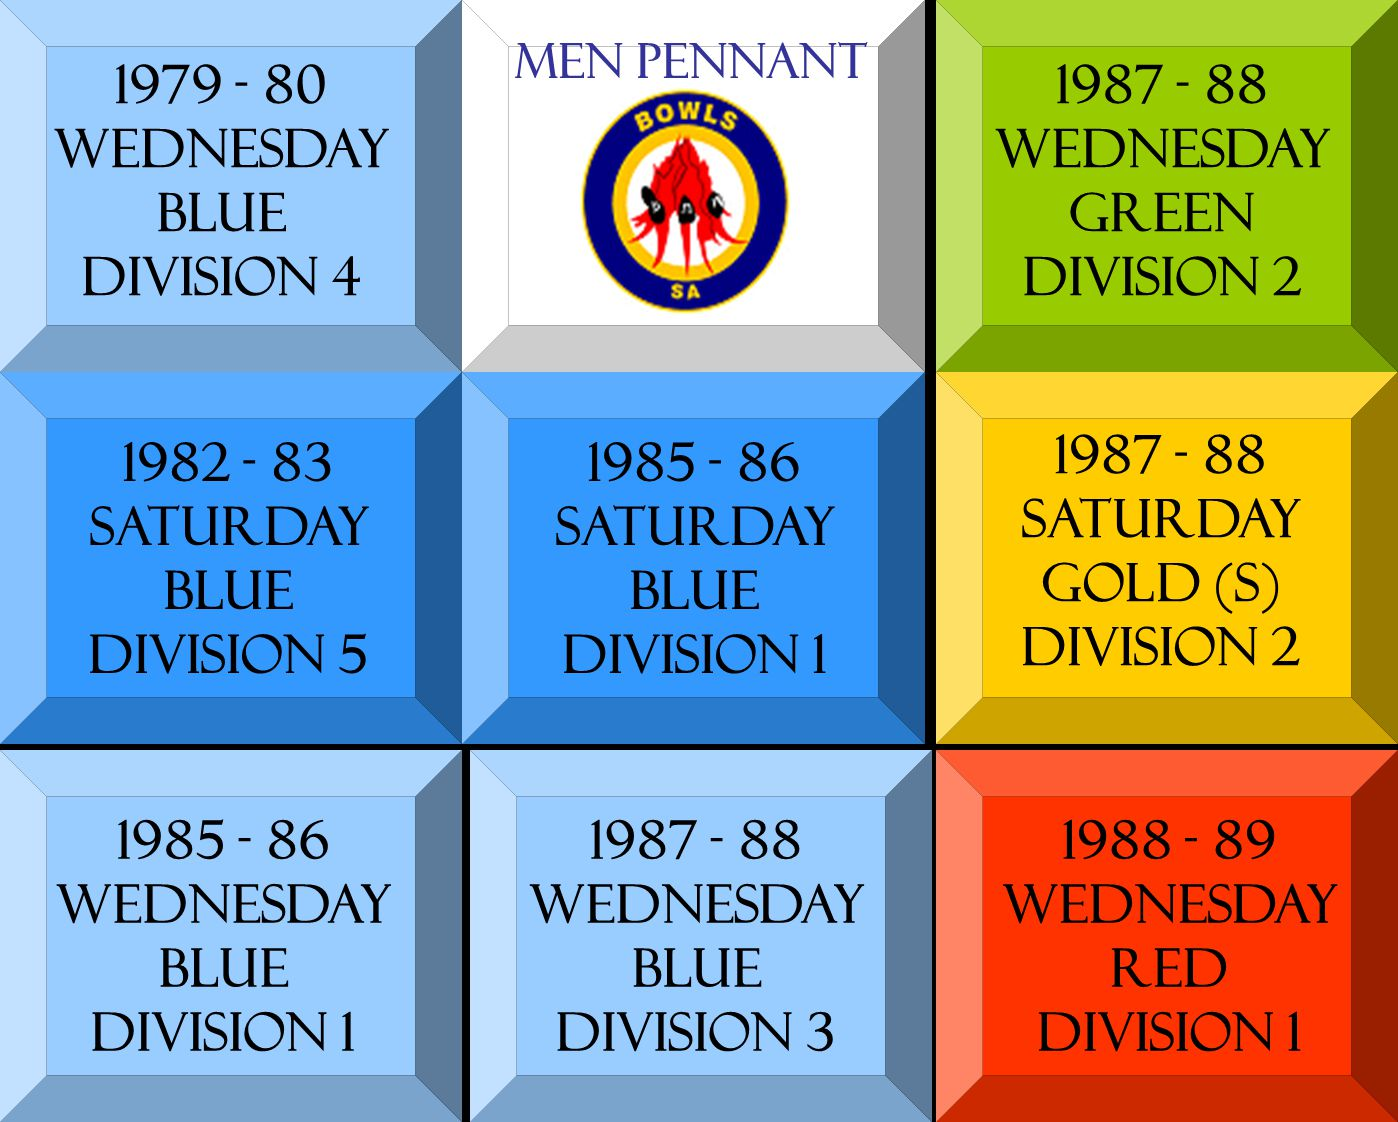 1979 - 80 WEDNESDAY BLUE DIVISION 4 1982 - 83 SATURDAY BLUE DIVISION 5 1985 - 86 SATURDAY BLUE DIVISION 1 1985 - 86 WEDNESDAY BLUE DIVISION 1 1987 - 88 WEDNESDAY BLUE DIVISION 3 1987 - 88 WEDNESDAY GREEN DIVISION 2 1987 - 88 SATURDAY GOLD (s) DIVISION 2 1988 - 89 WEDNESDAY RED DIVISION 1 Men pennant